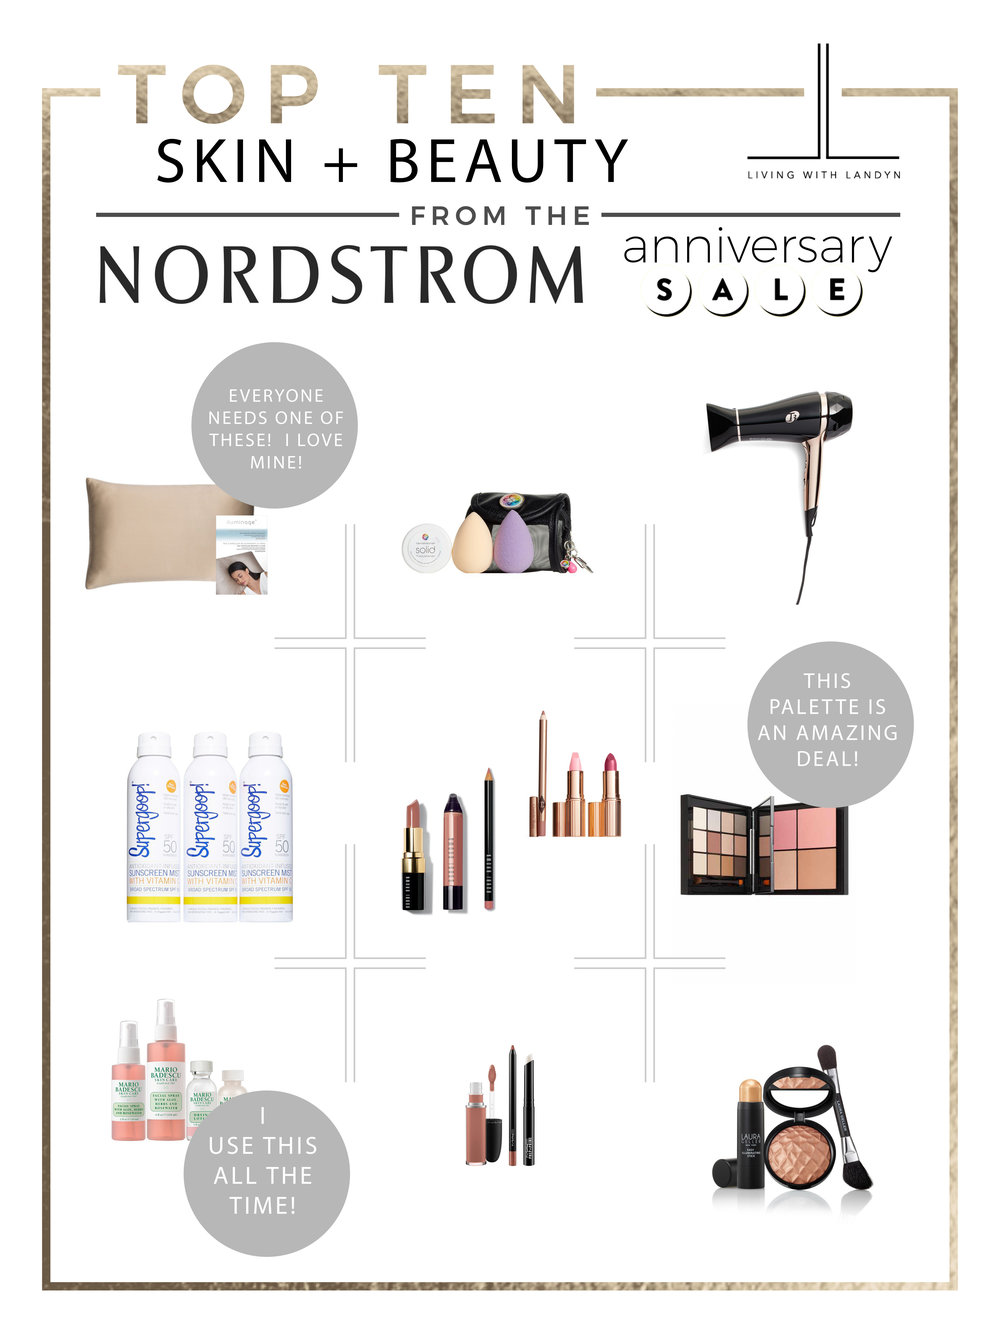 TOP 10 SKIN AND BEAUTY PICKS FROM THE NORDSTROM ANNIVERSARY SALE